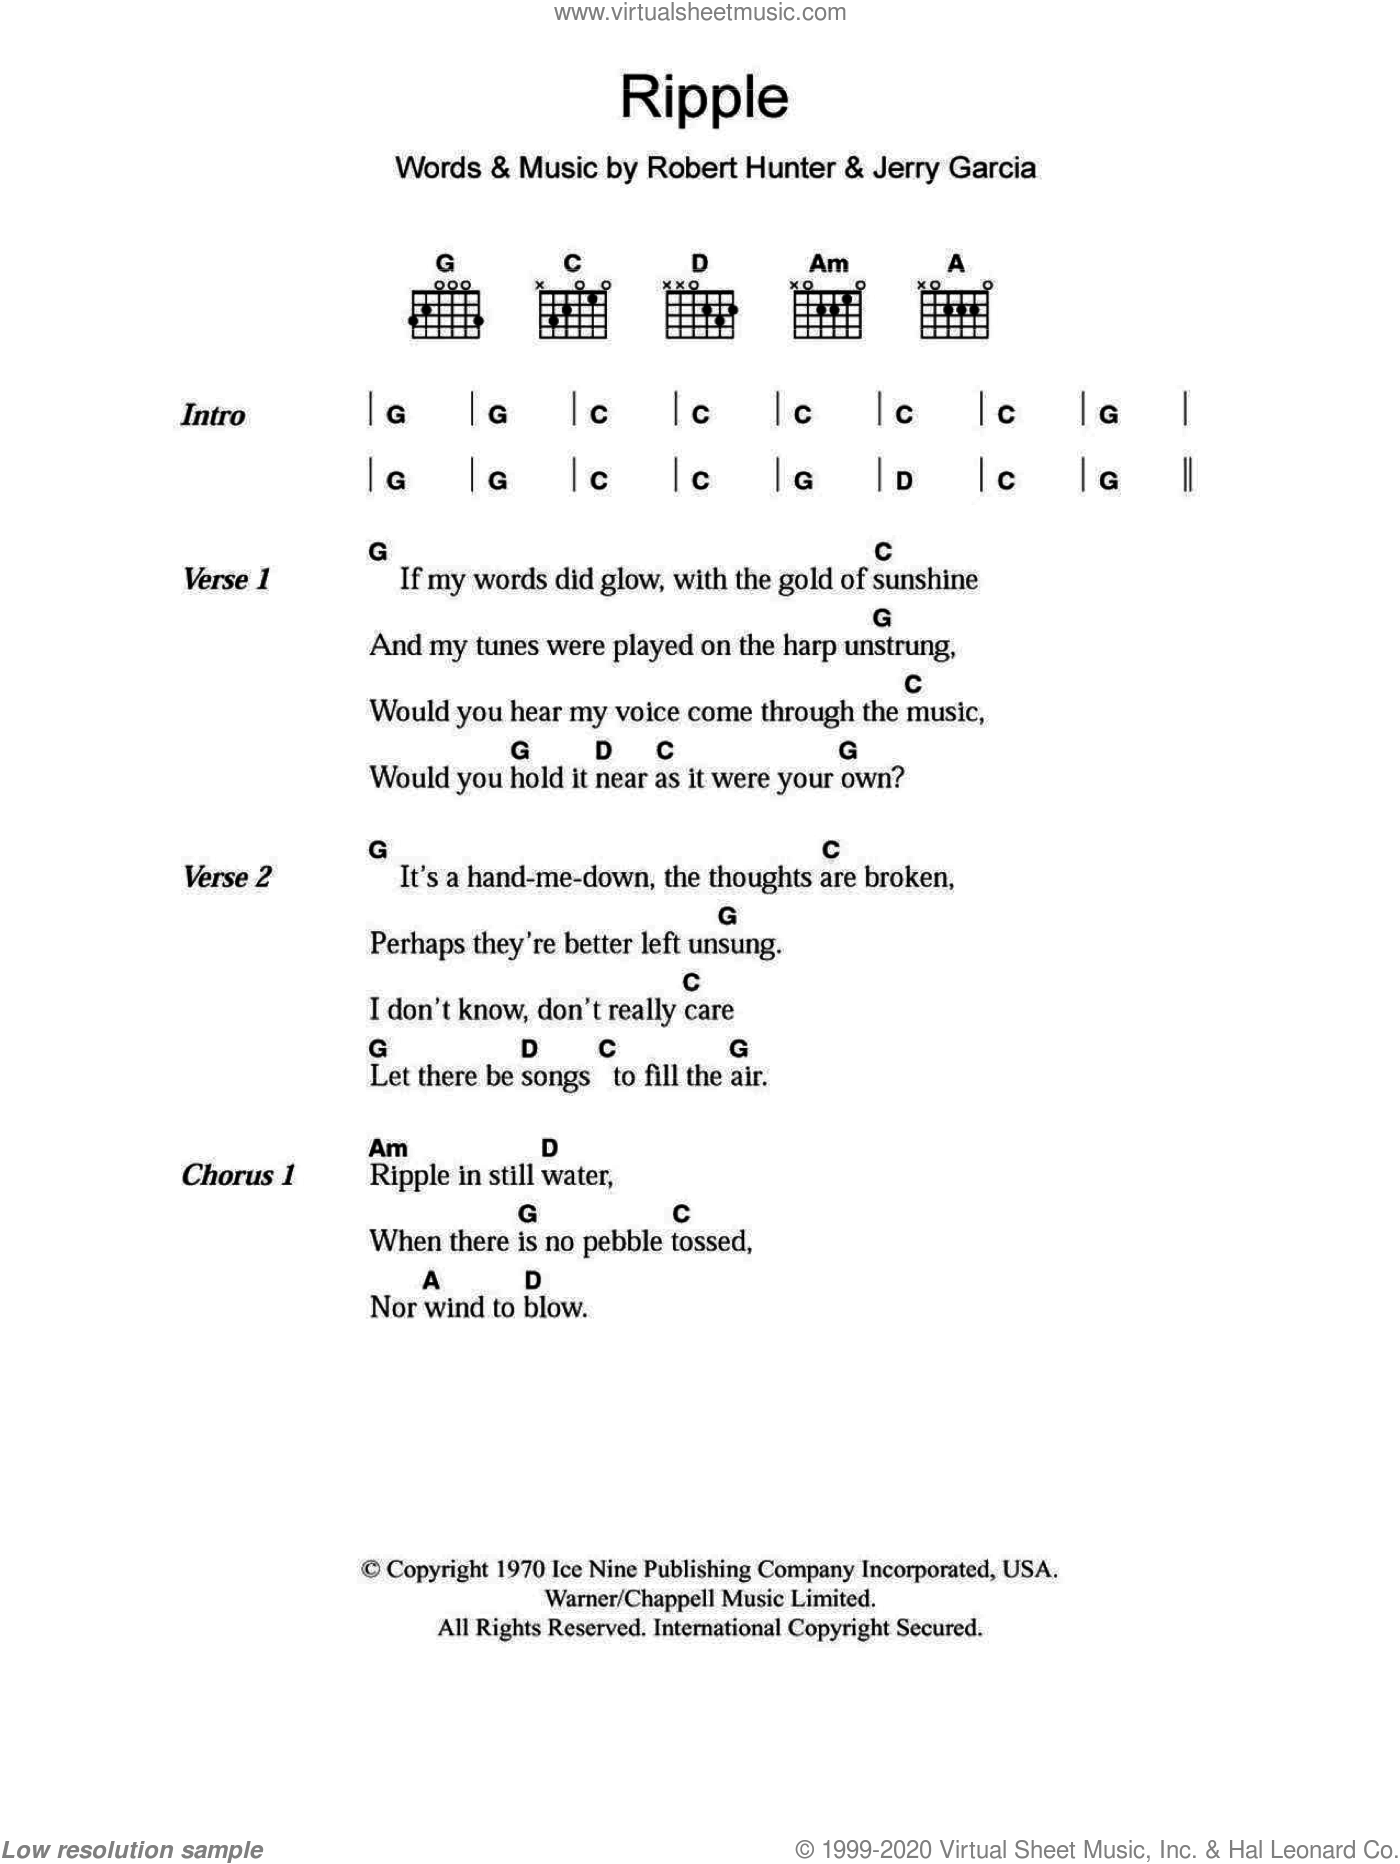 Dead - Ripple sheet music for guitar (chords) [PDF]